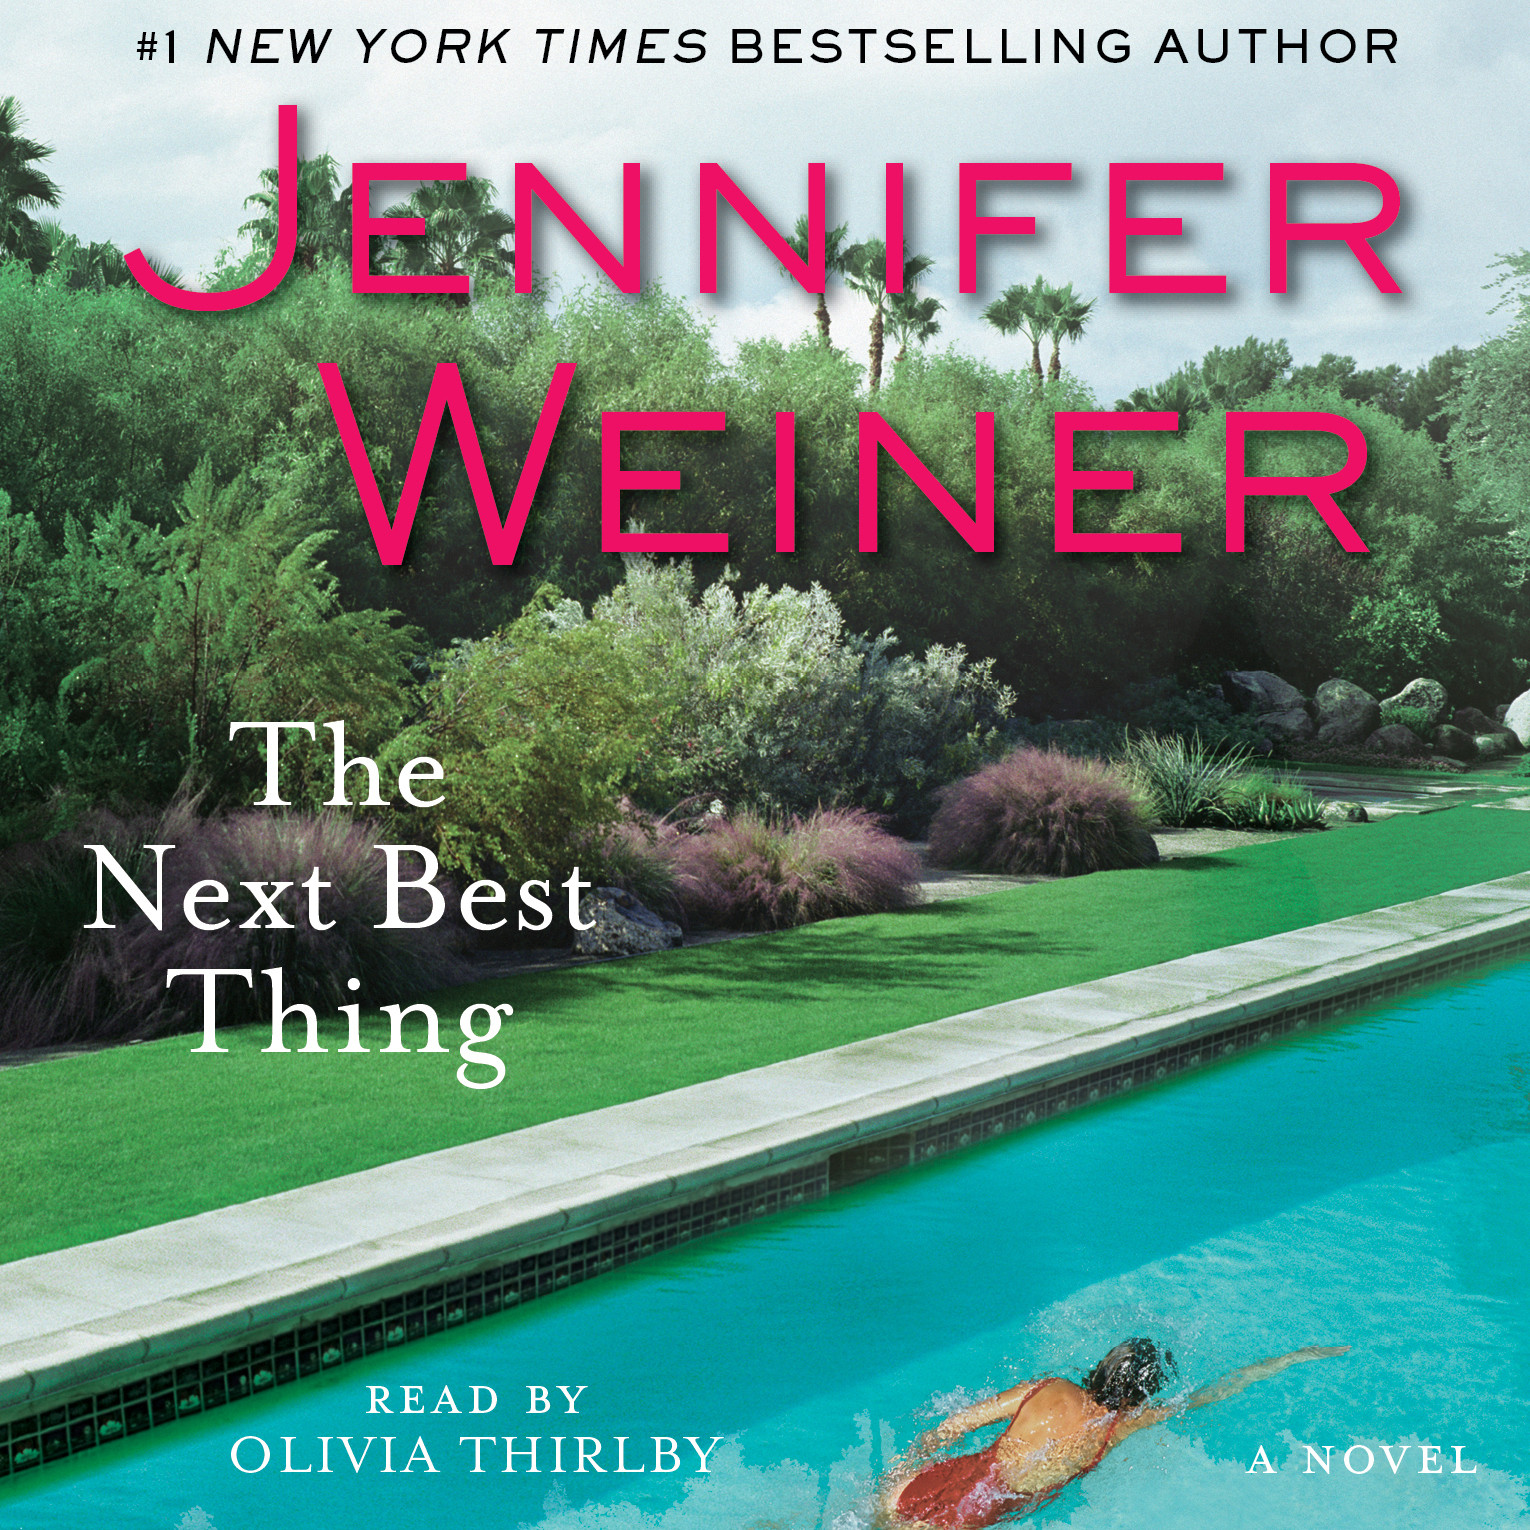 Printable The Next Best Thing: A Novel Audiobook Cover Art